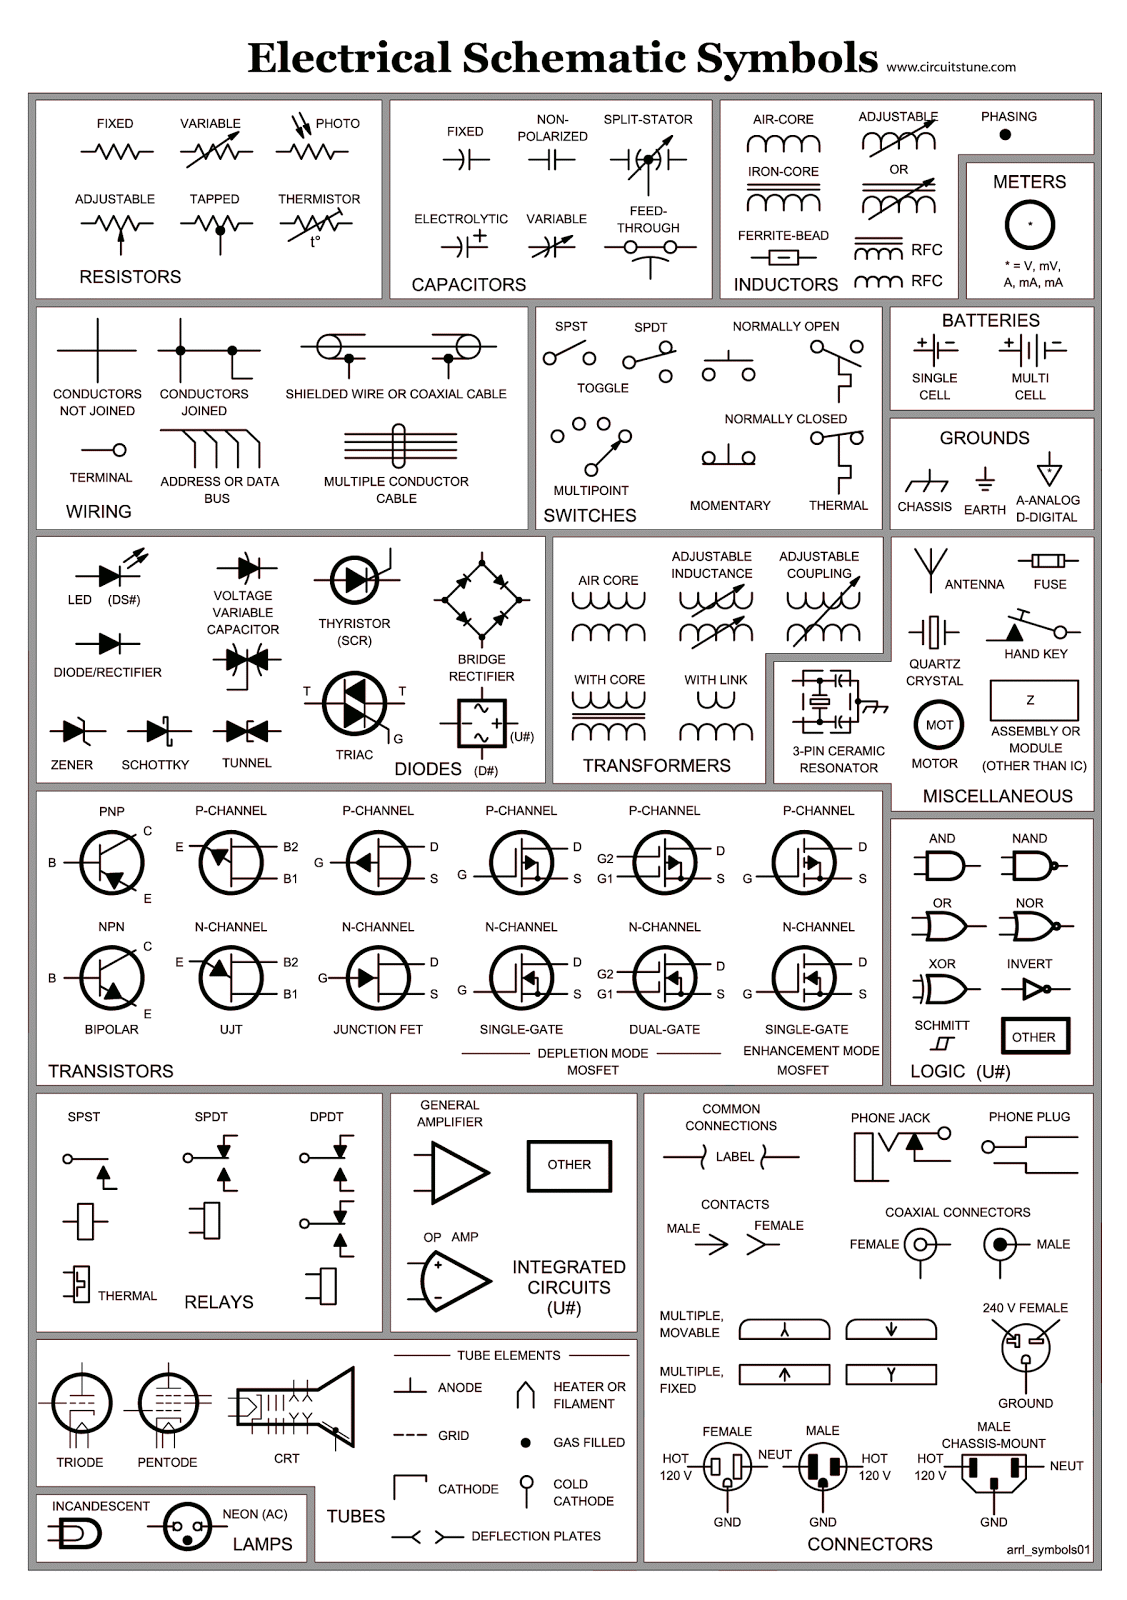 electrical schematic symbols ~ circuitstune this is so cool sigils Vehicle Electrical Diagram Symbols electrical schematic symbols ~ circuitstune this is so cool